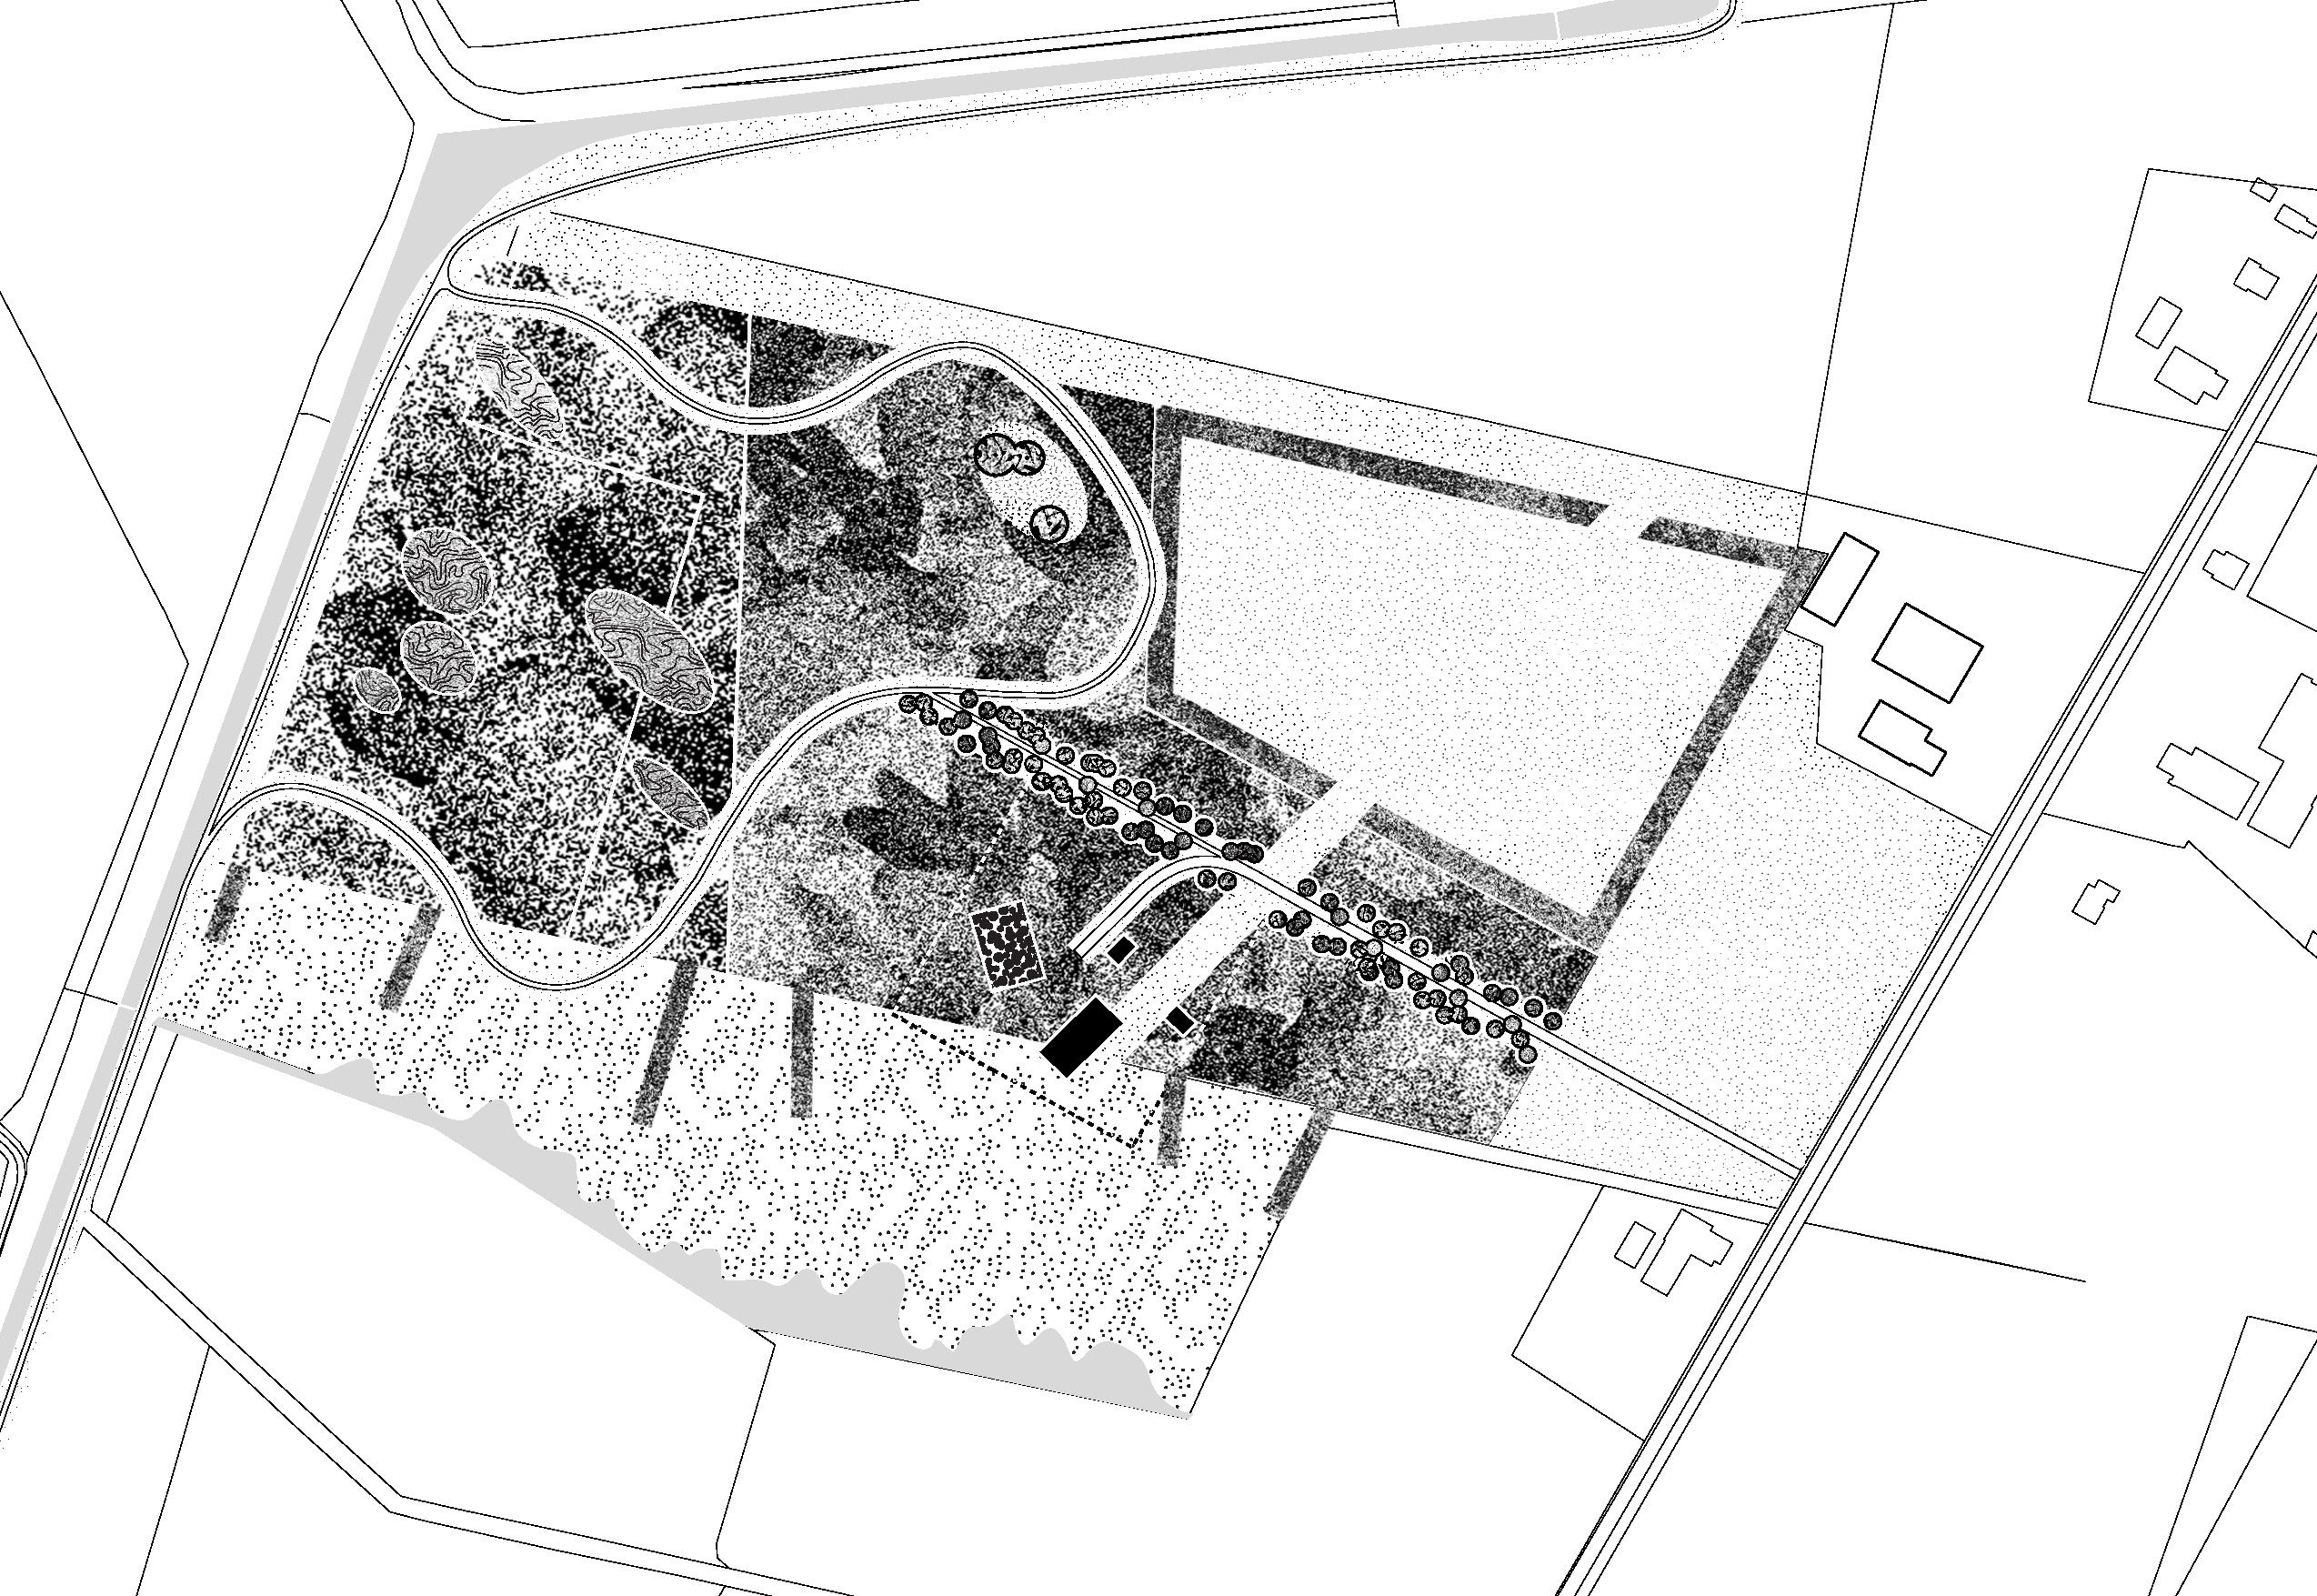 landscape architecture blueprints in architectural drawings artist master plan landscape architecture charts architecture layout pin by issy on architectural drawings pinterest